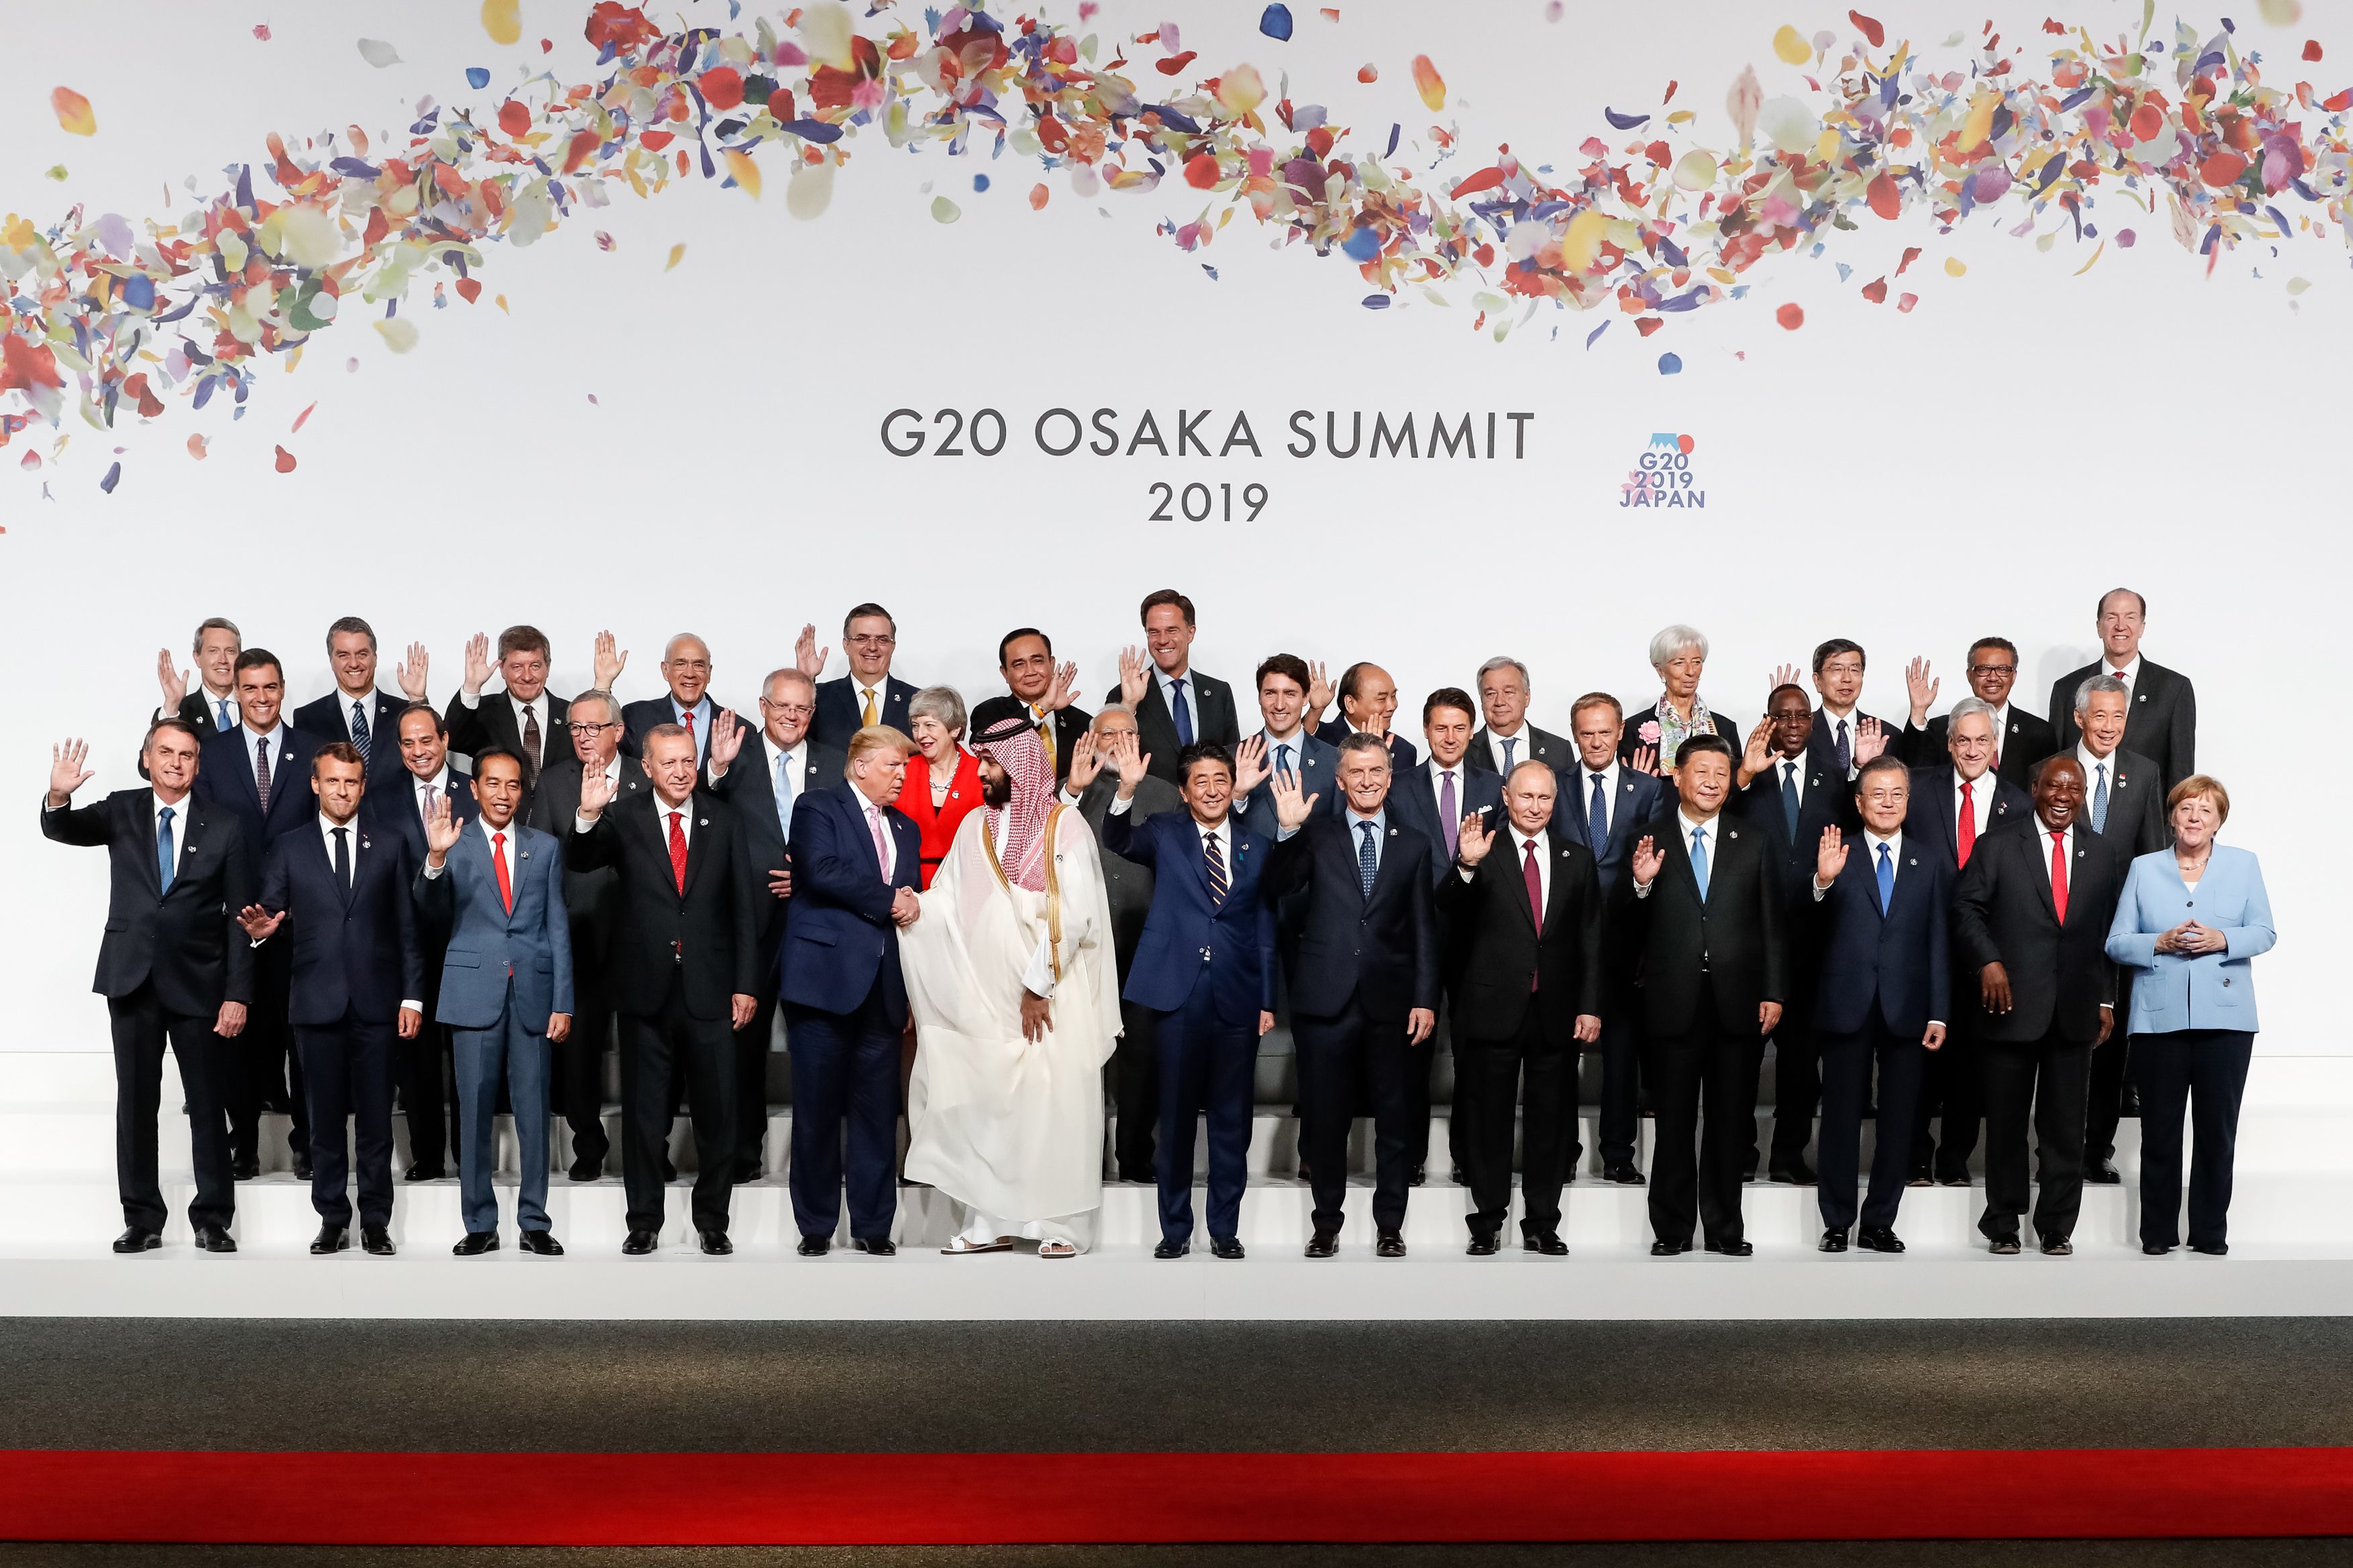 The members of the 2019 G20 summit in Osaka, Japan.